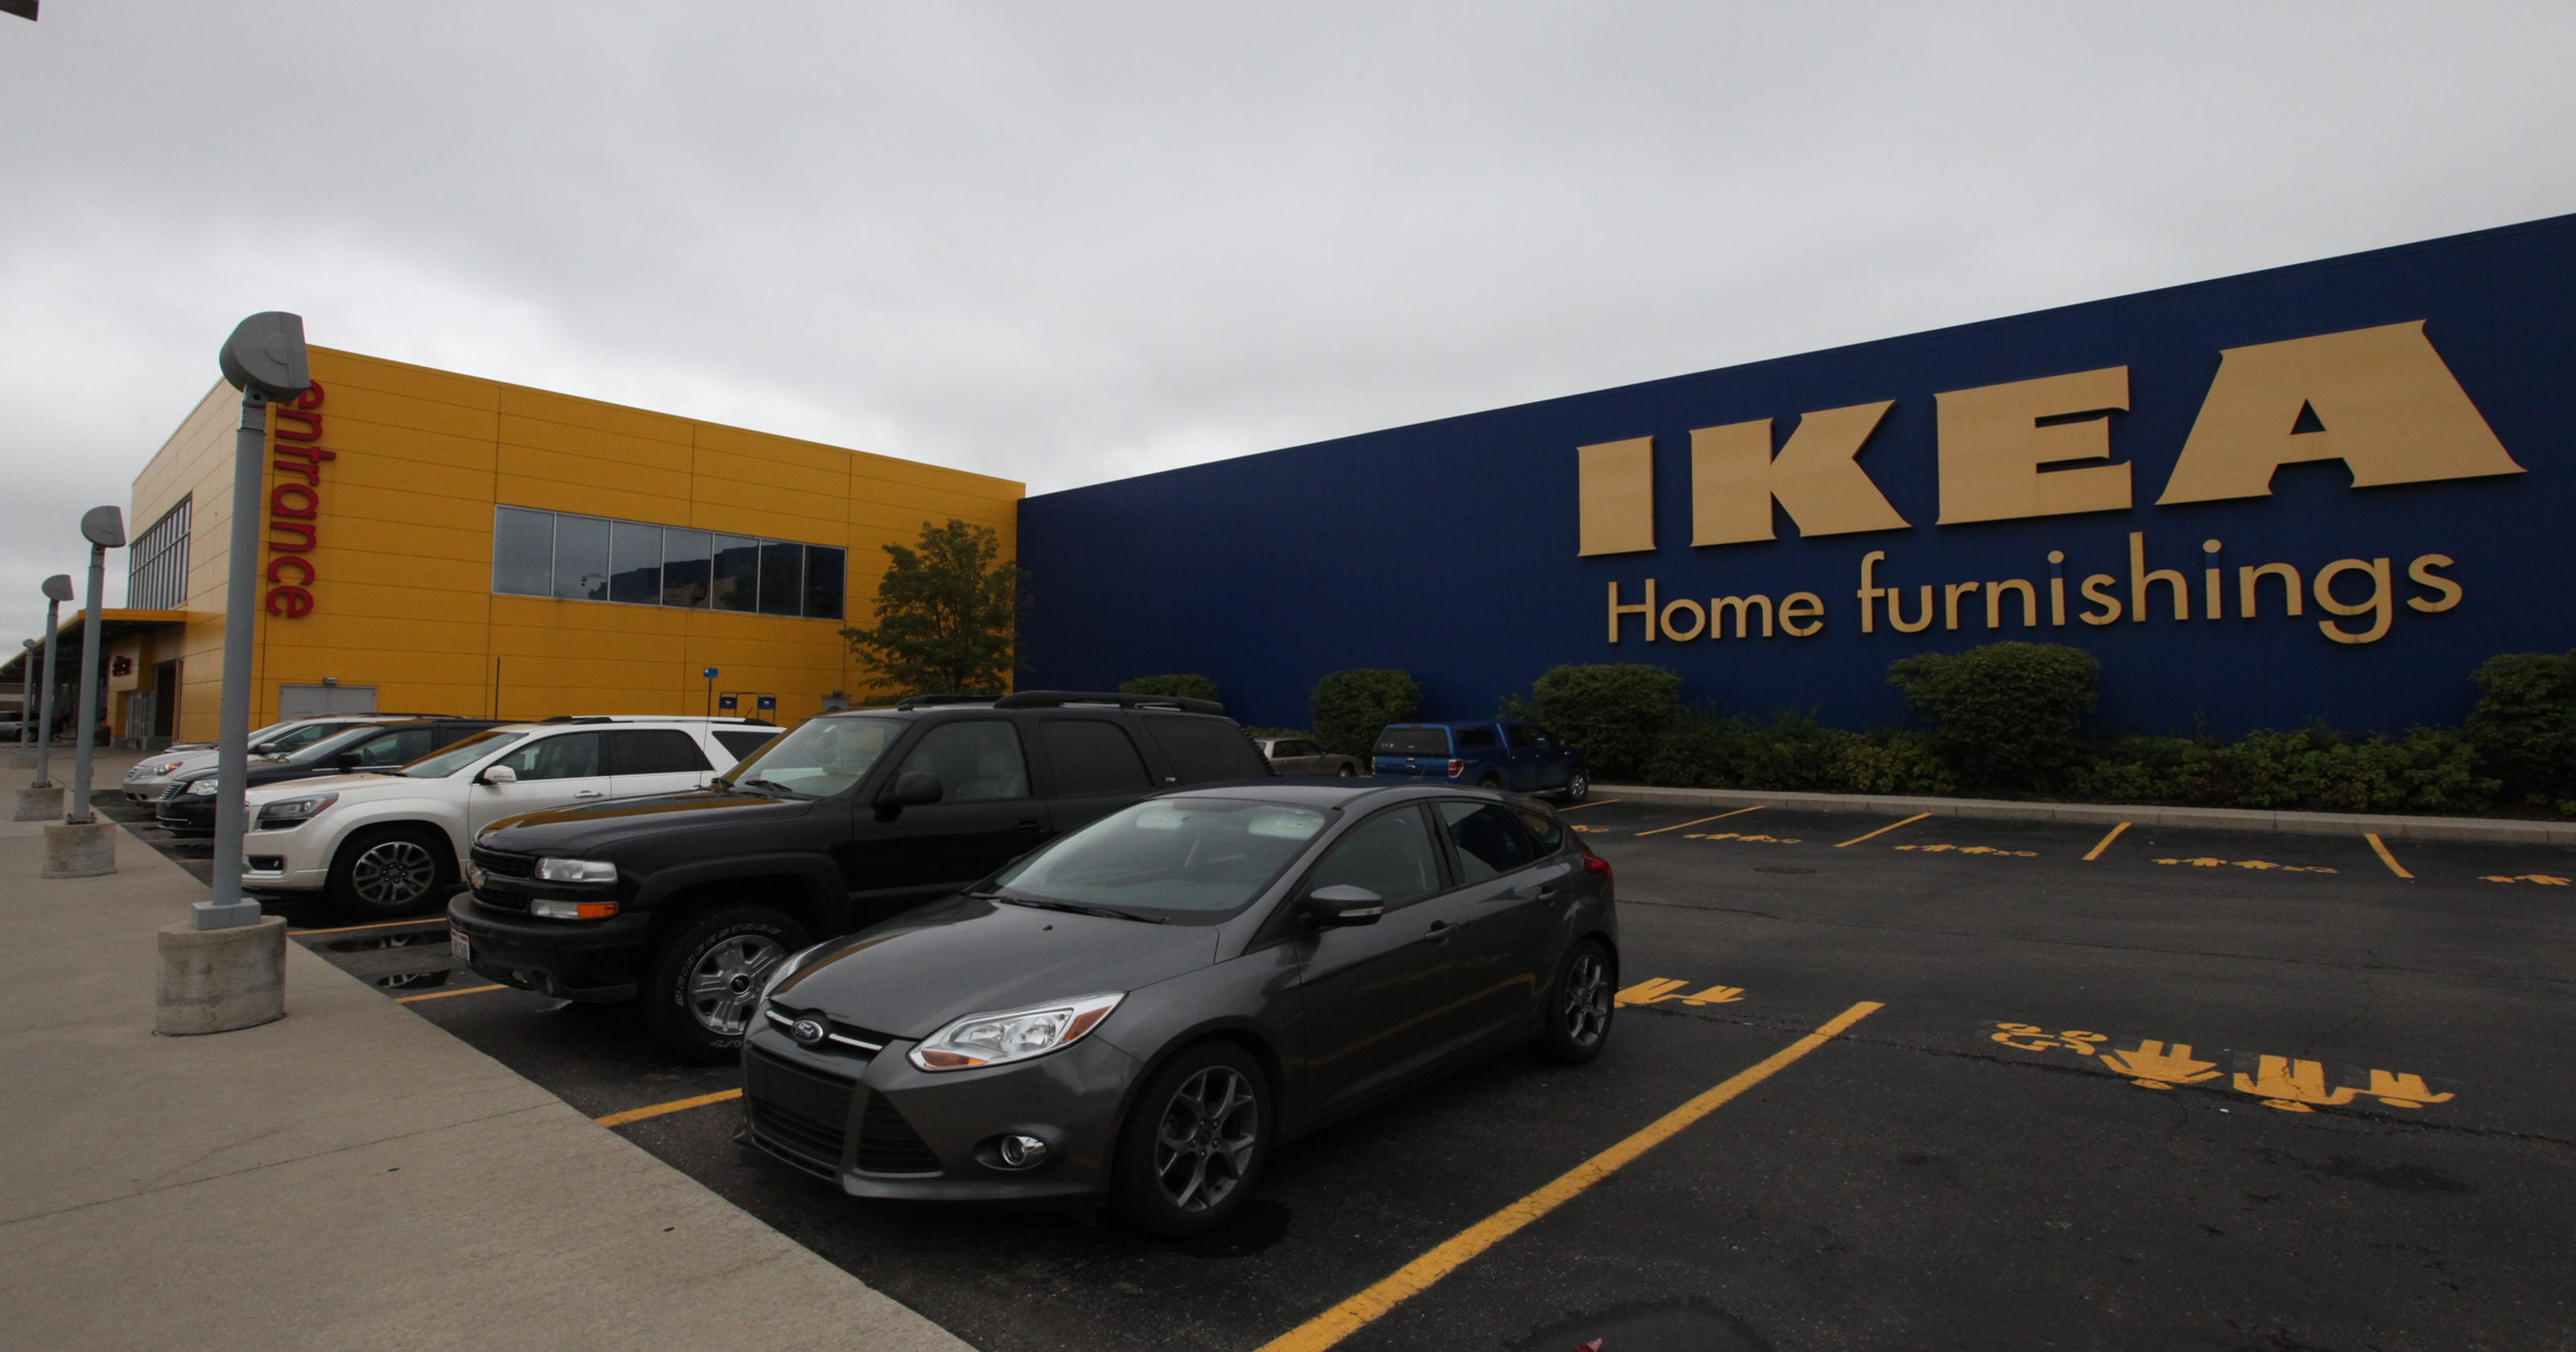 Could A Second Ikea Furniture Store Be Coming To Michigan